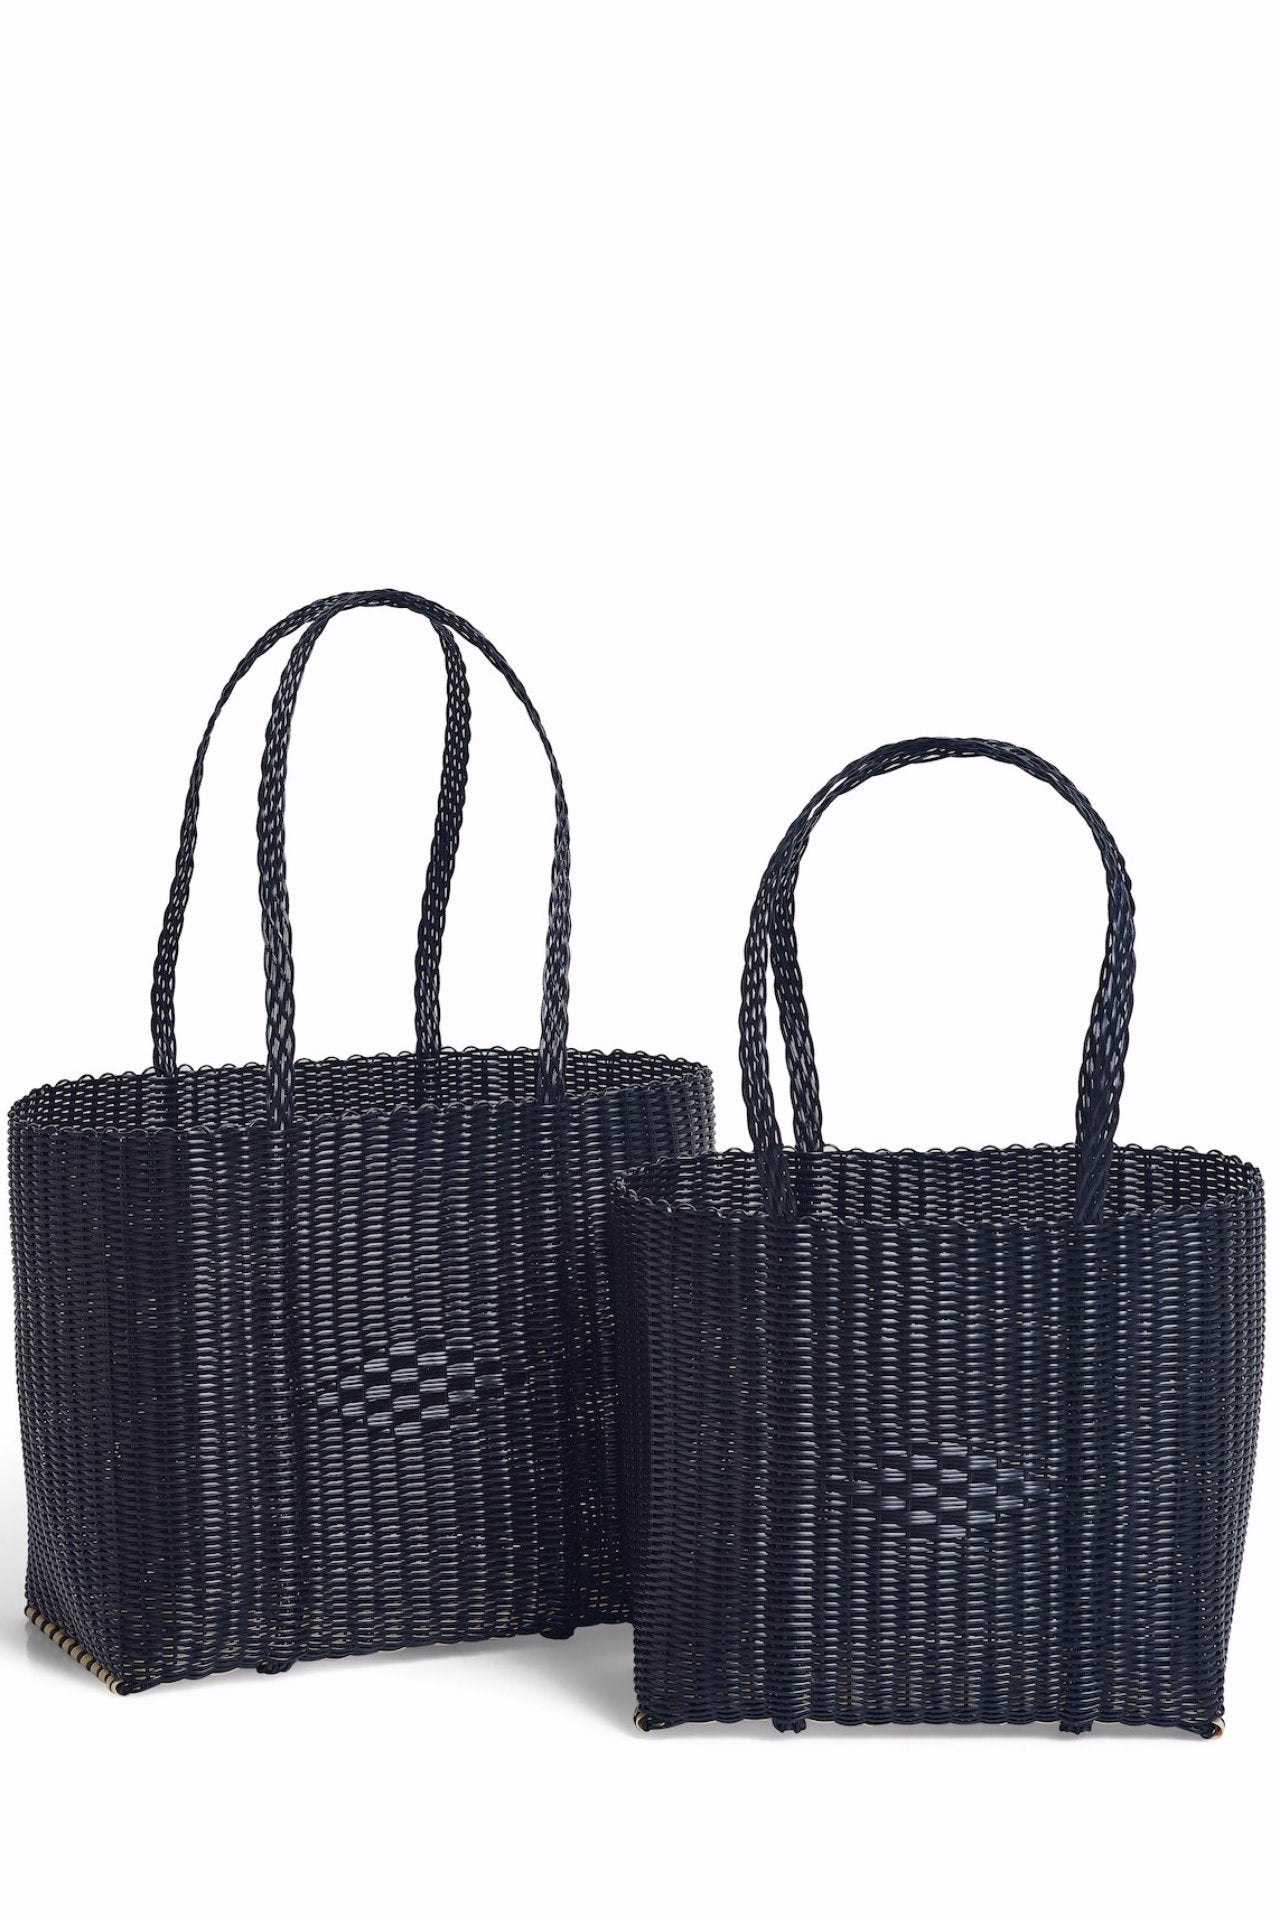 Handmade Eco Friendly Tote Bags BLACK